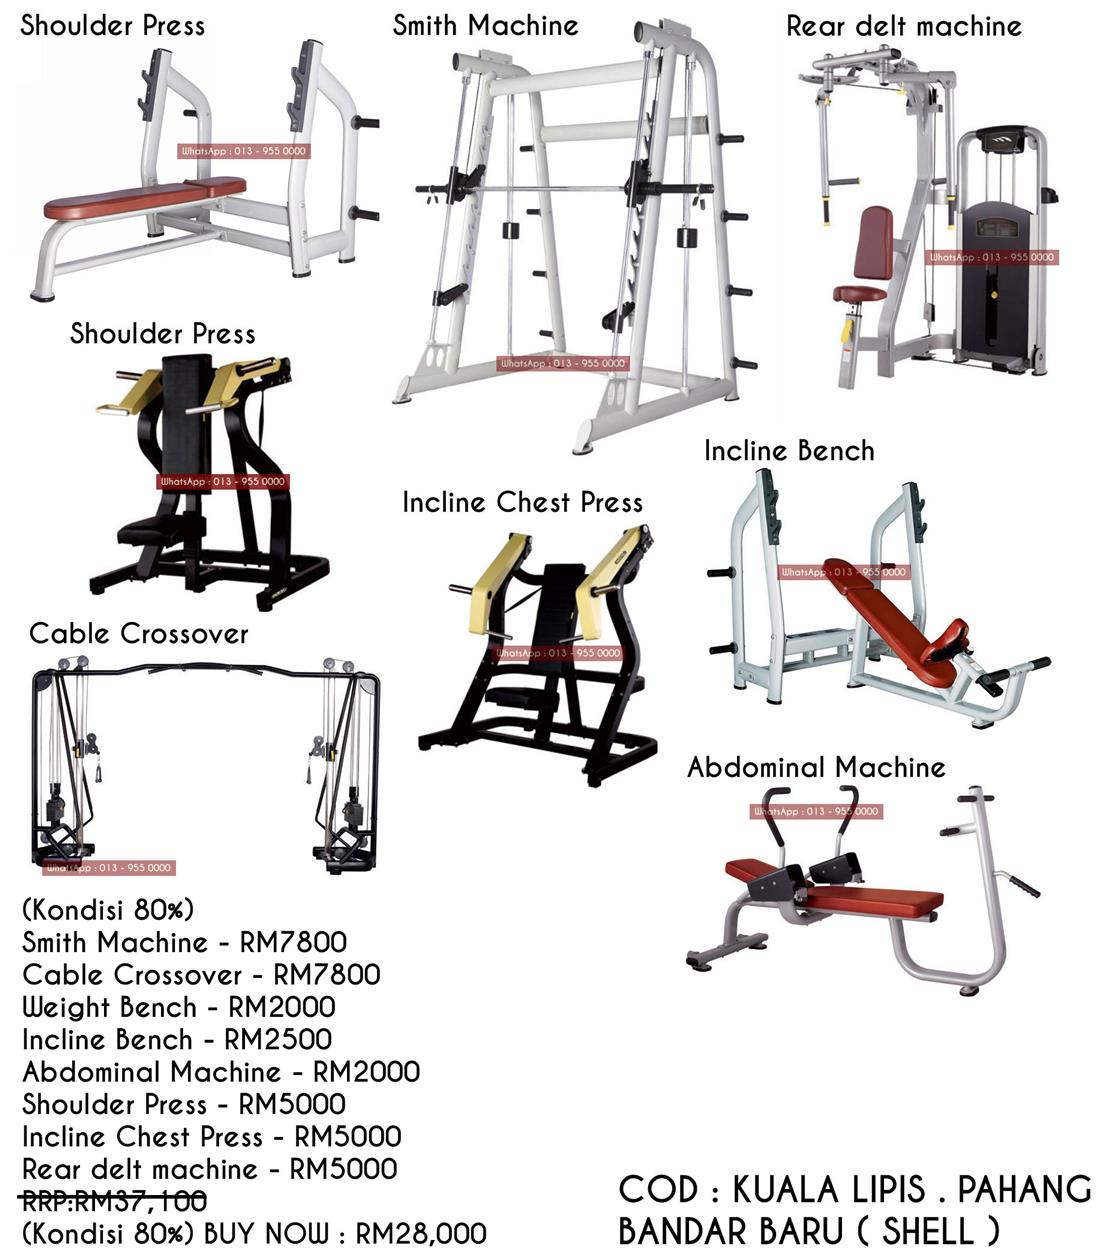 Smith Machine,Cable Crossover,Weight Bench,Incline Bench,Abdominal Mac